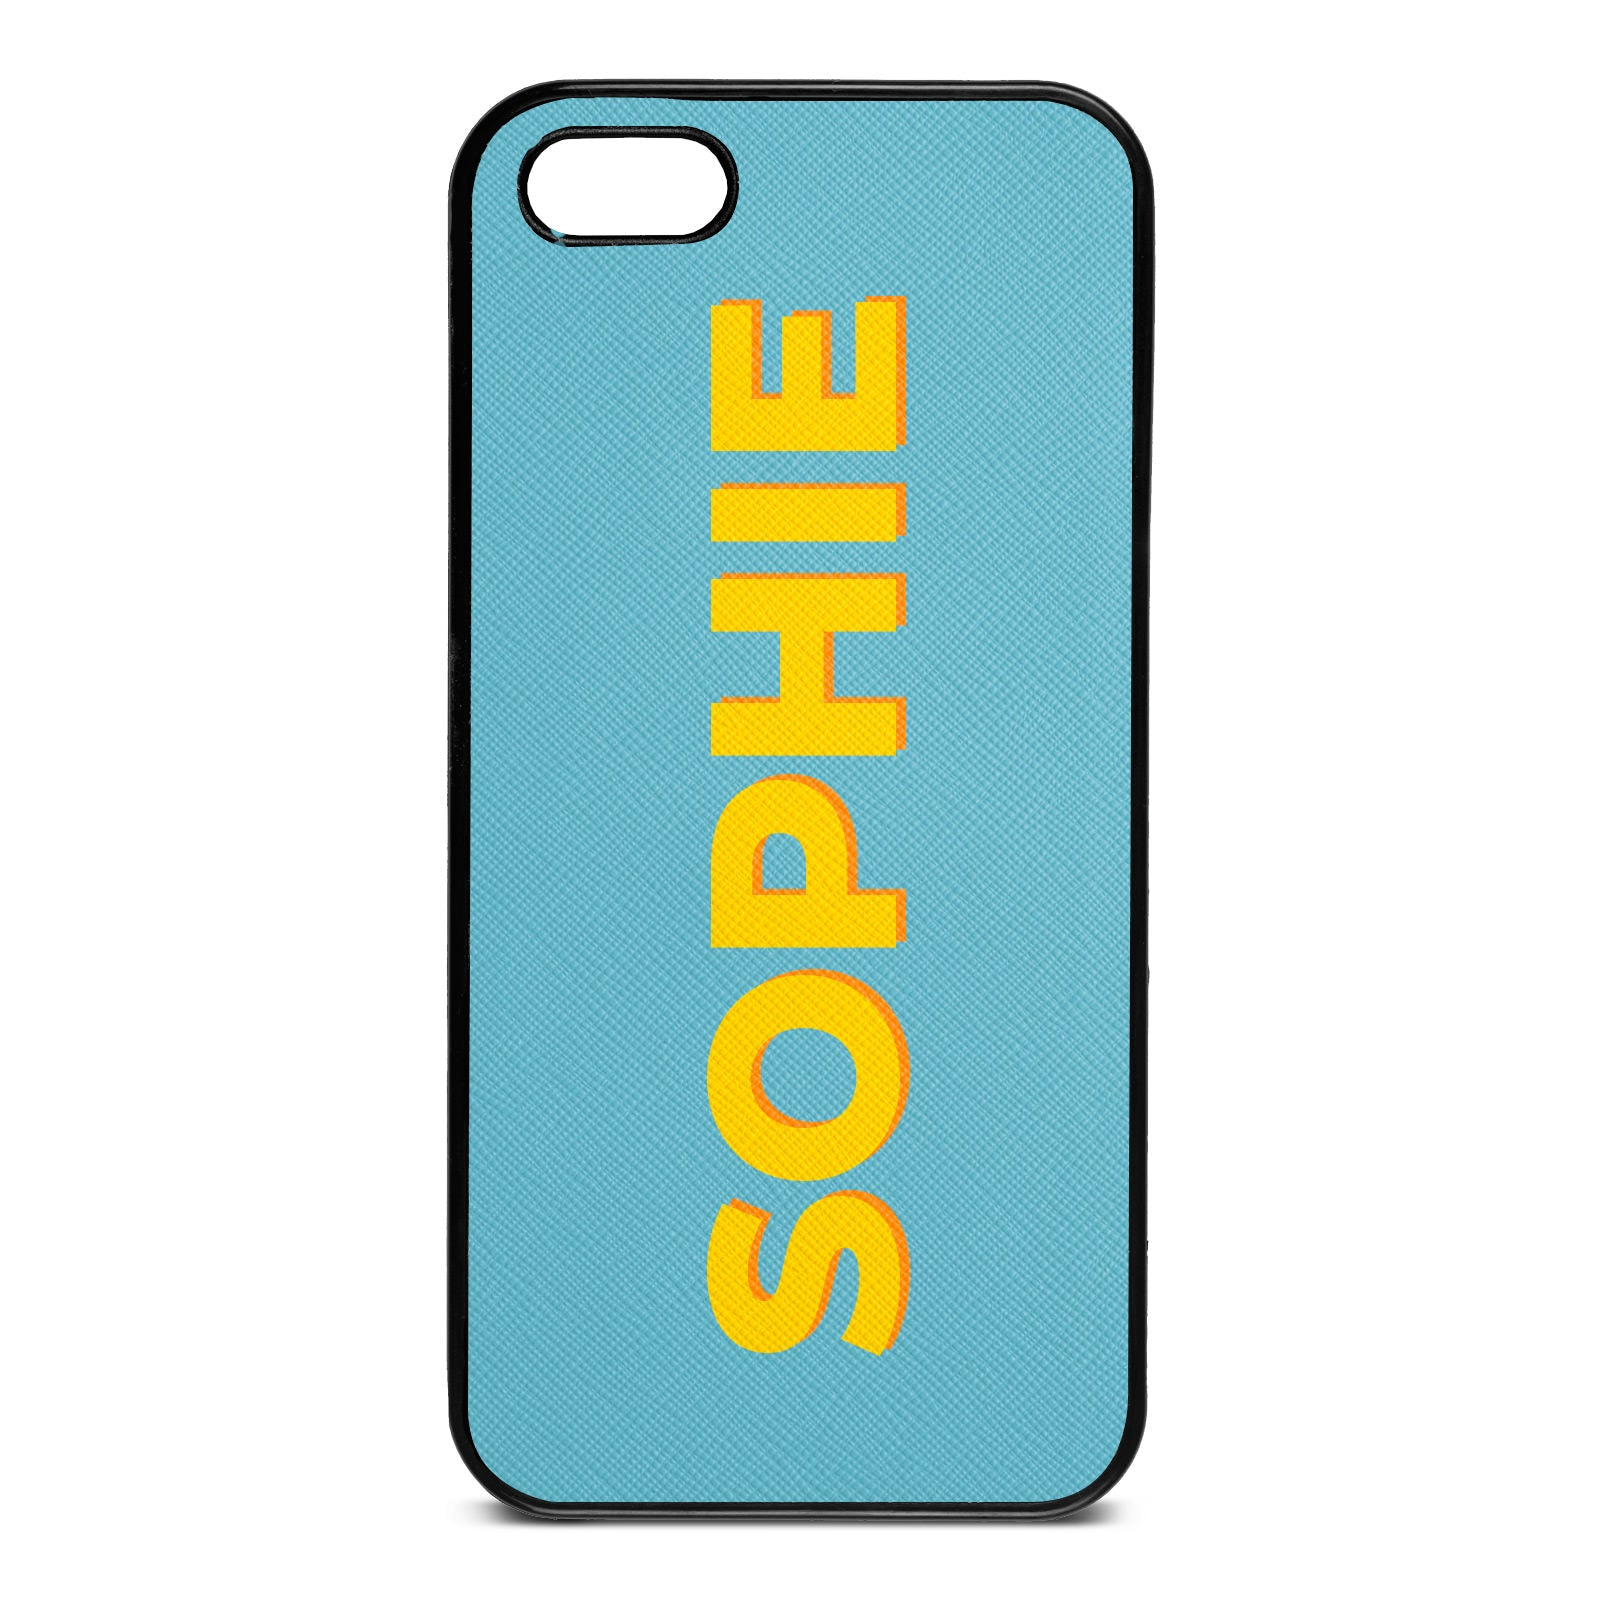 Personalised Sky Blue Saffiano Leather iPhone 5 Case